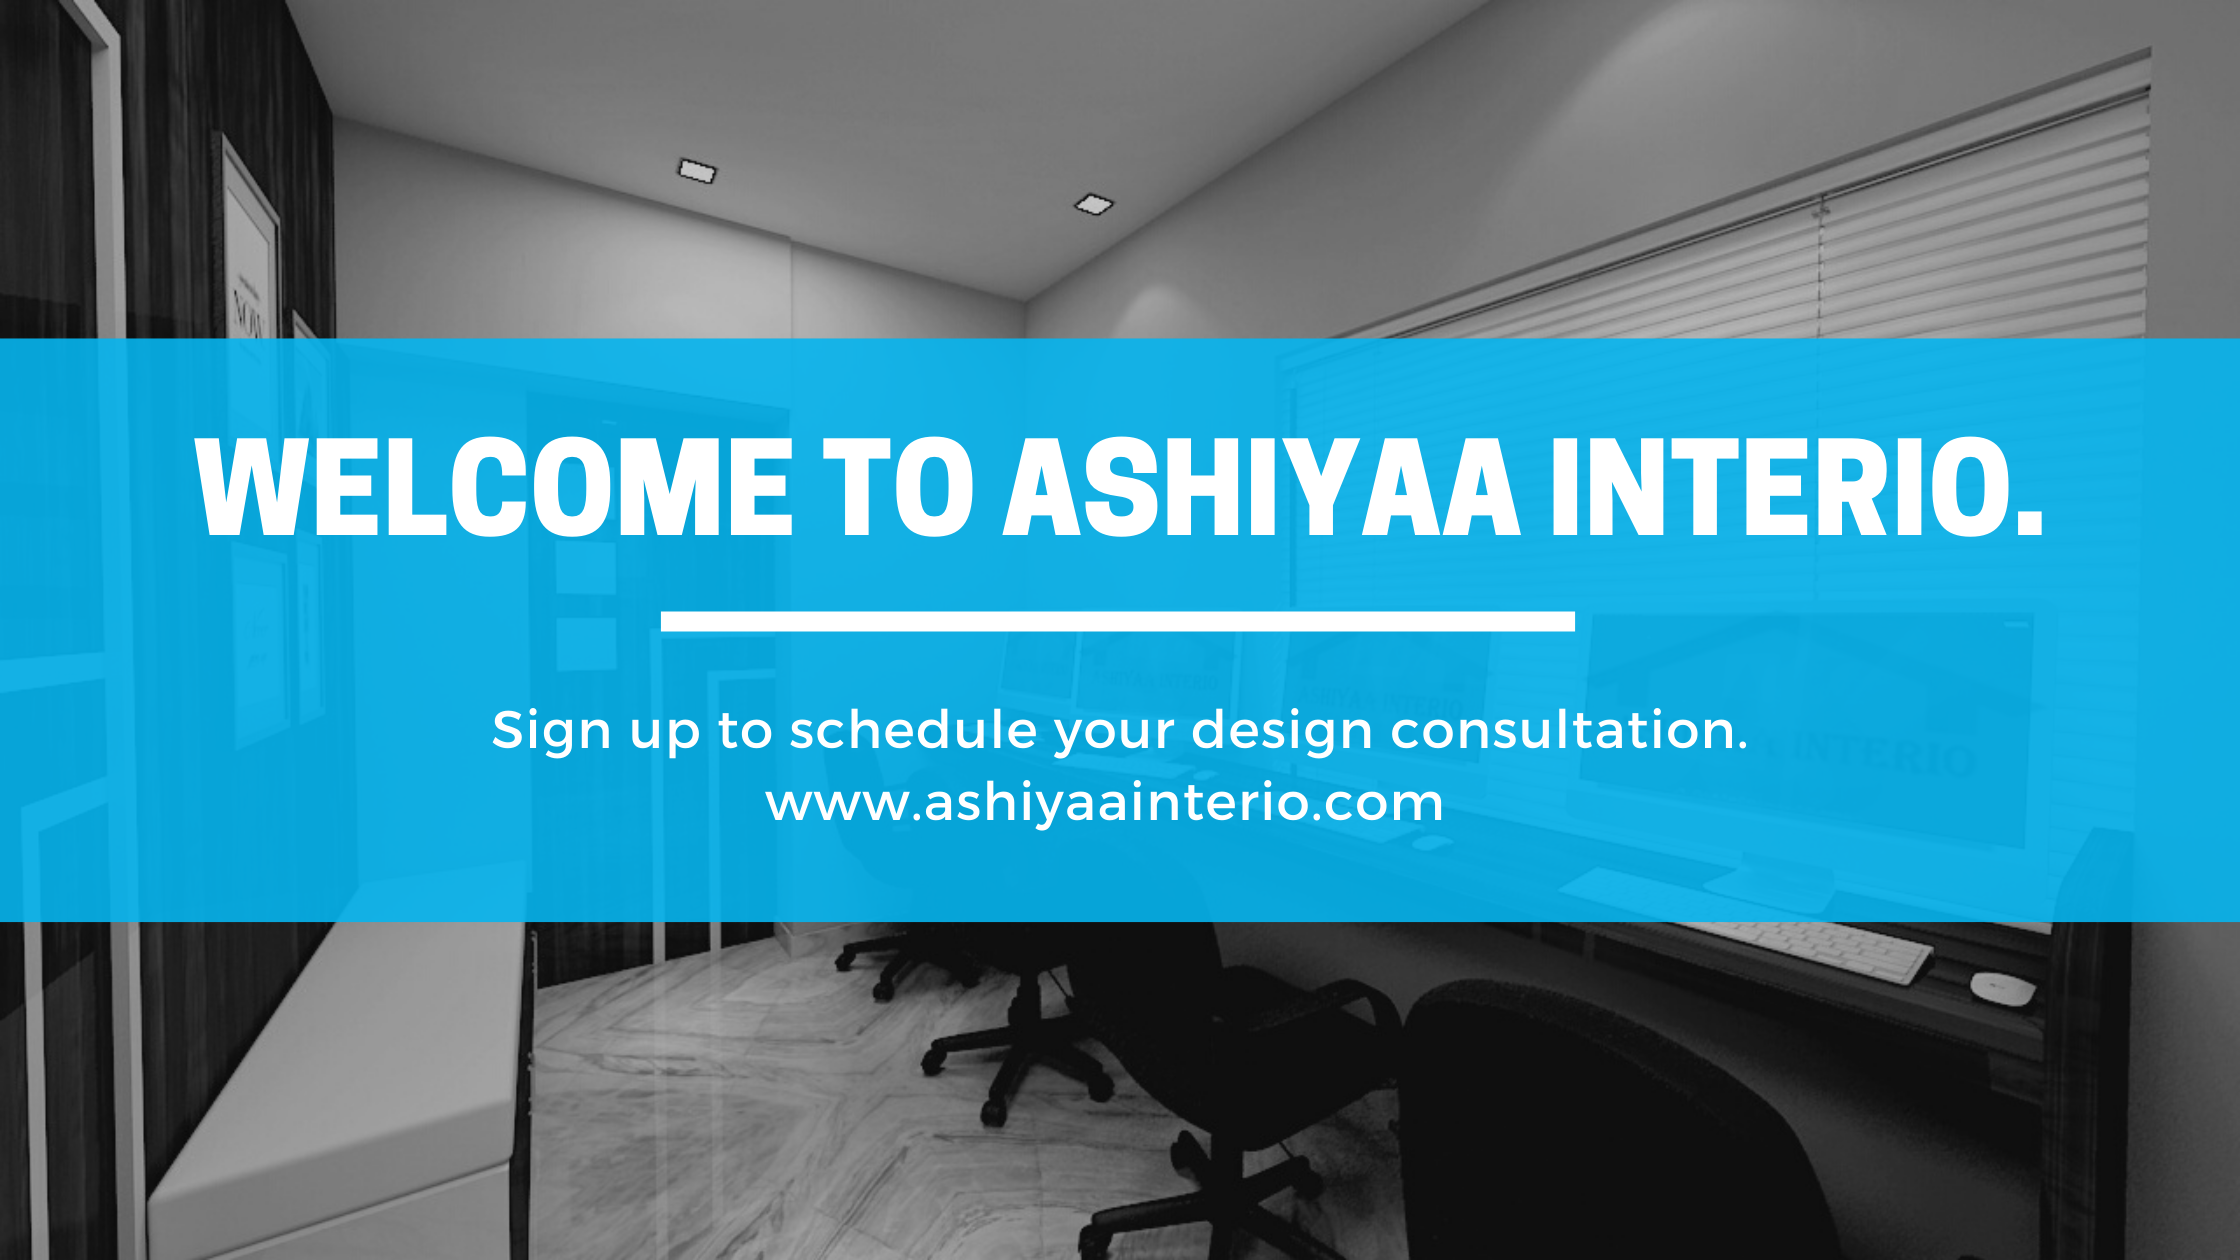 Office Interior Design Kolkata - Ashiyaa Interio